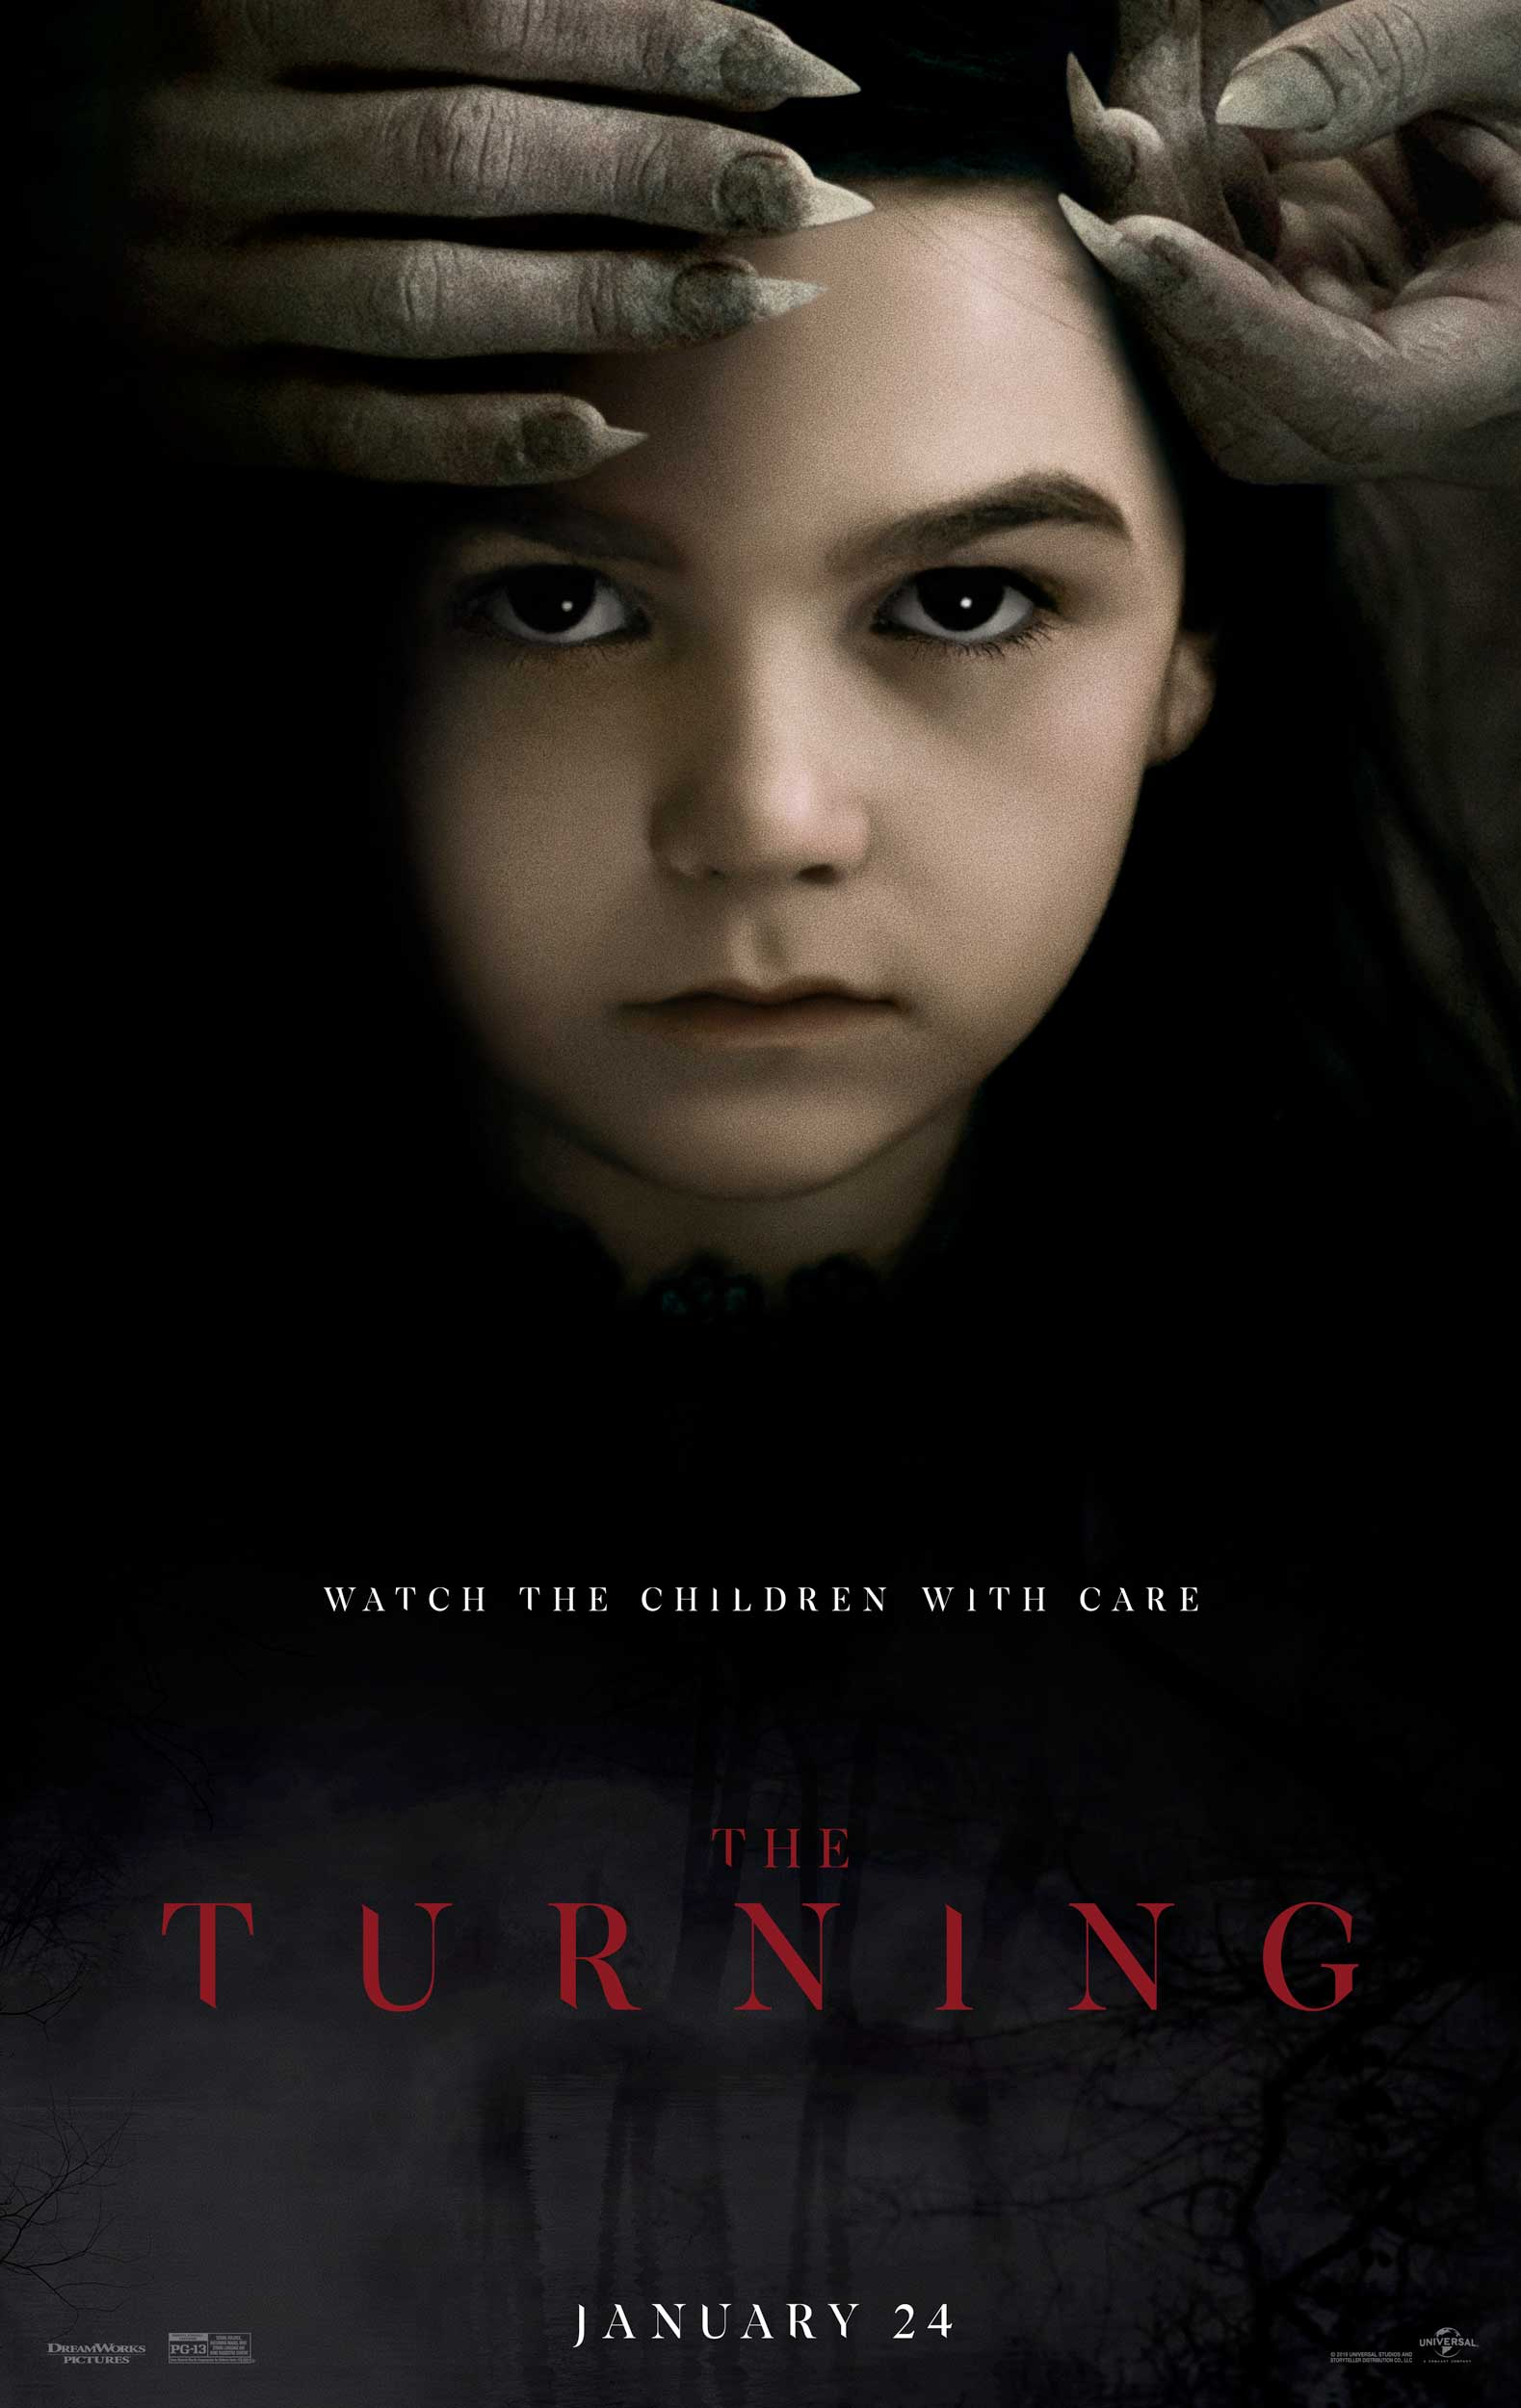 The Turning offical poster